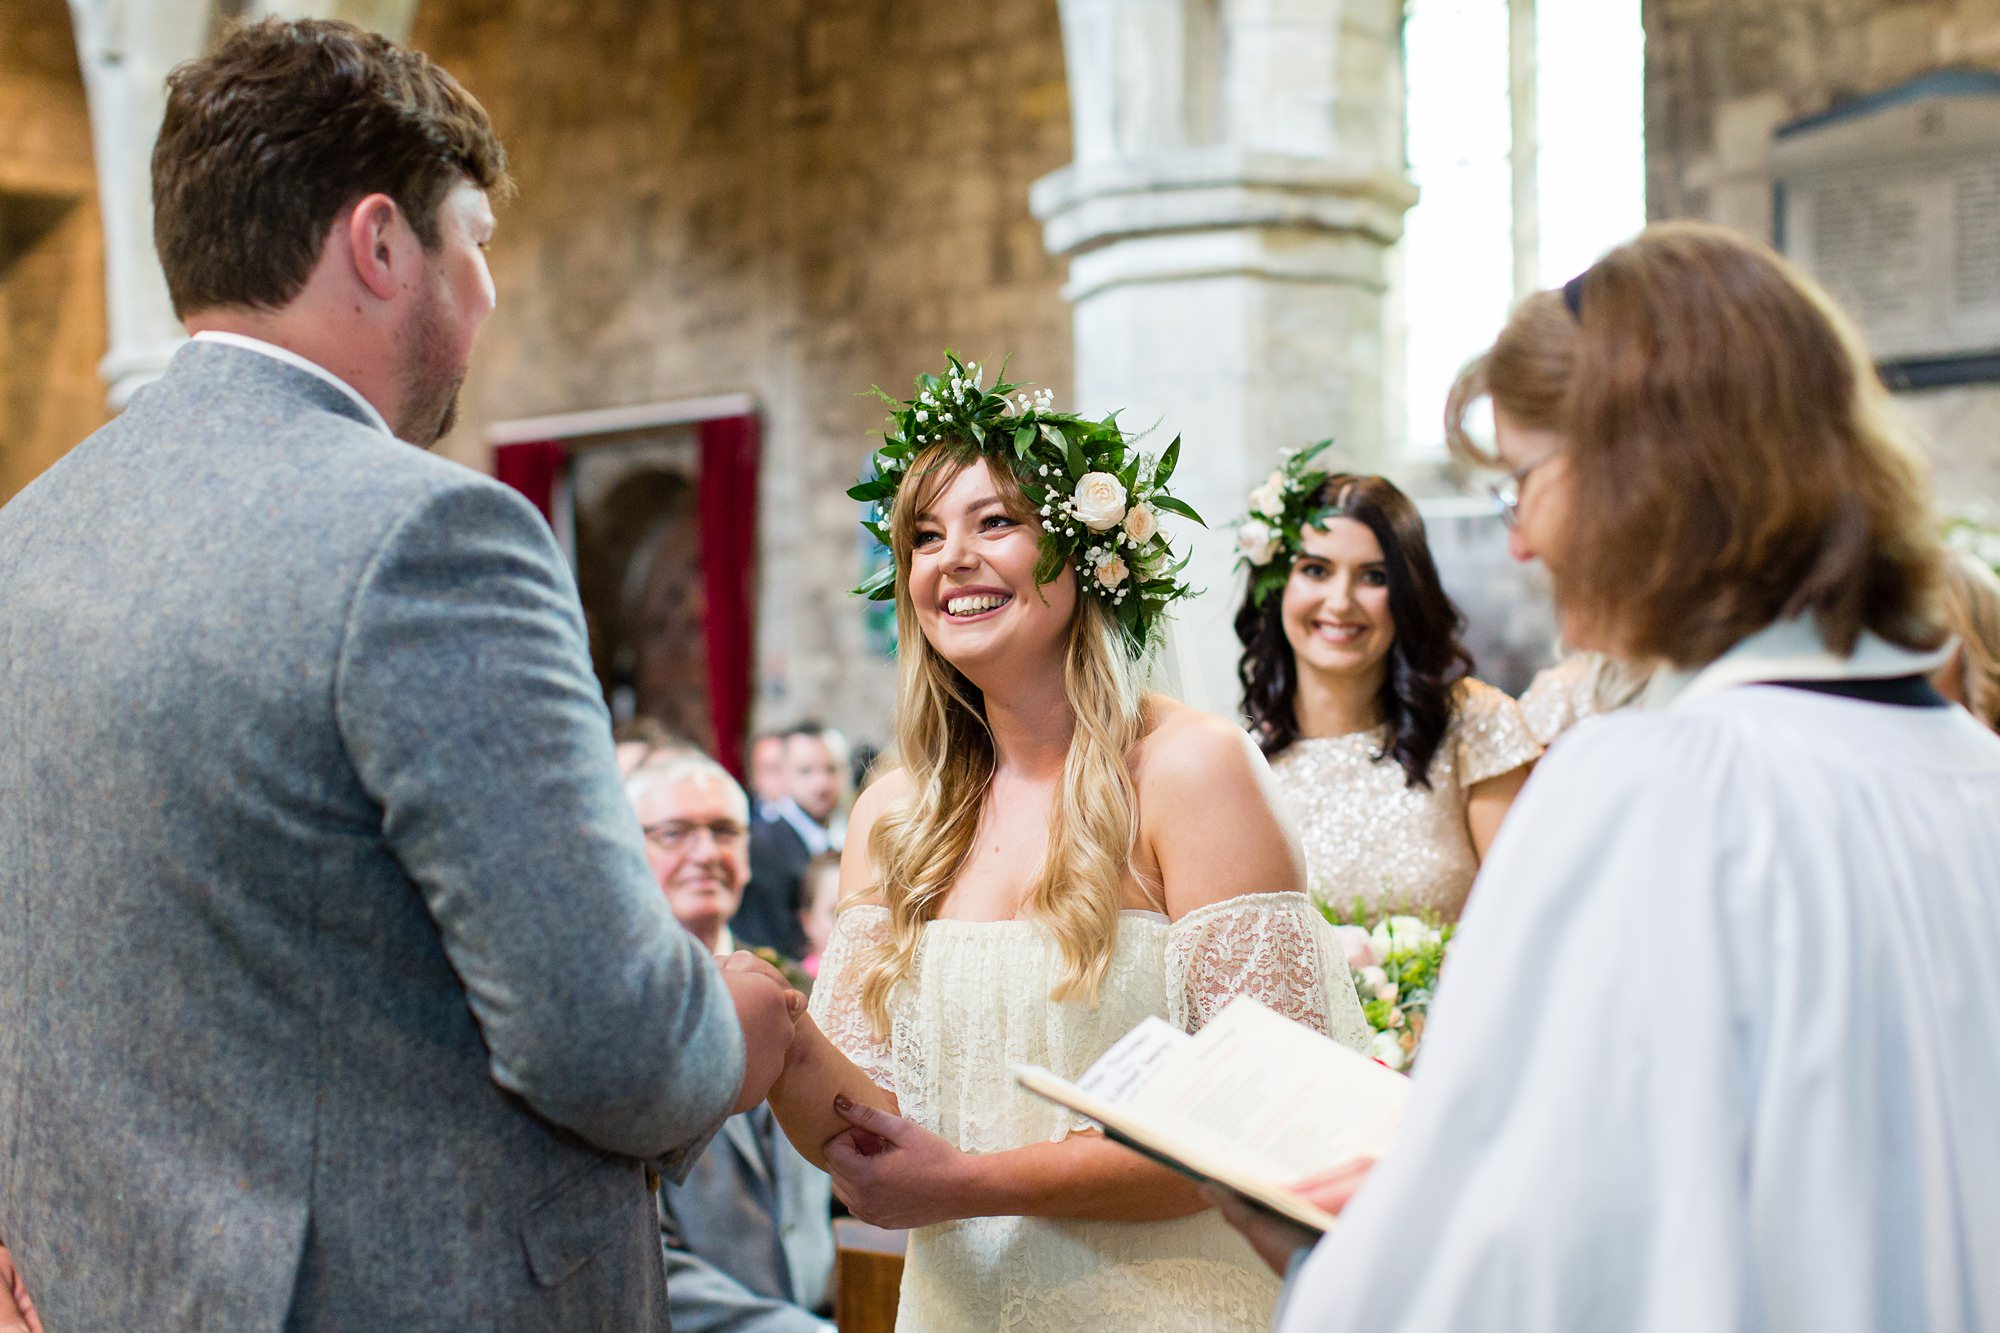 Villa farm wedding photography getting married at St. Wilfred's church in Brayton